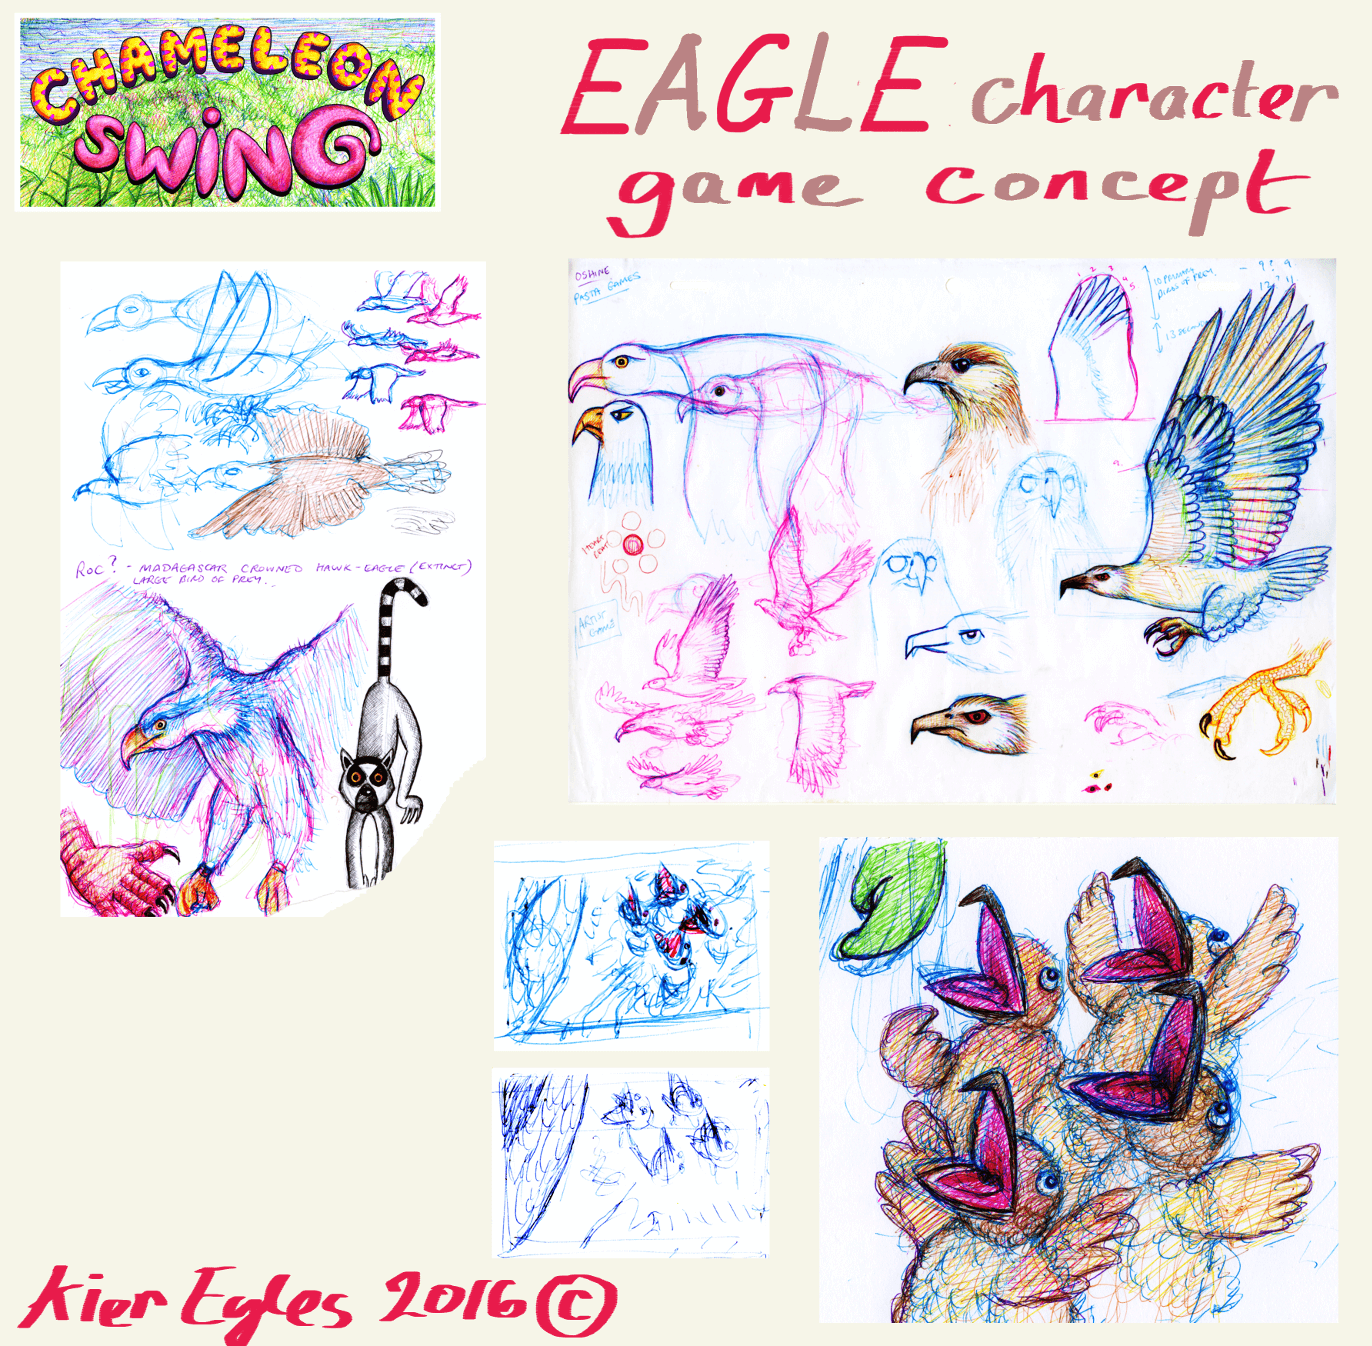 The collection of concept art for the crazed eagle.